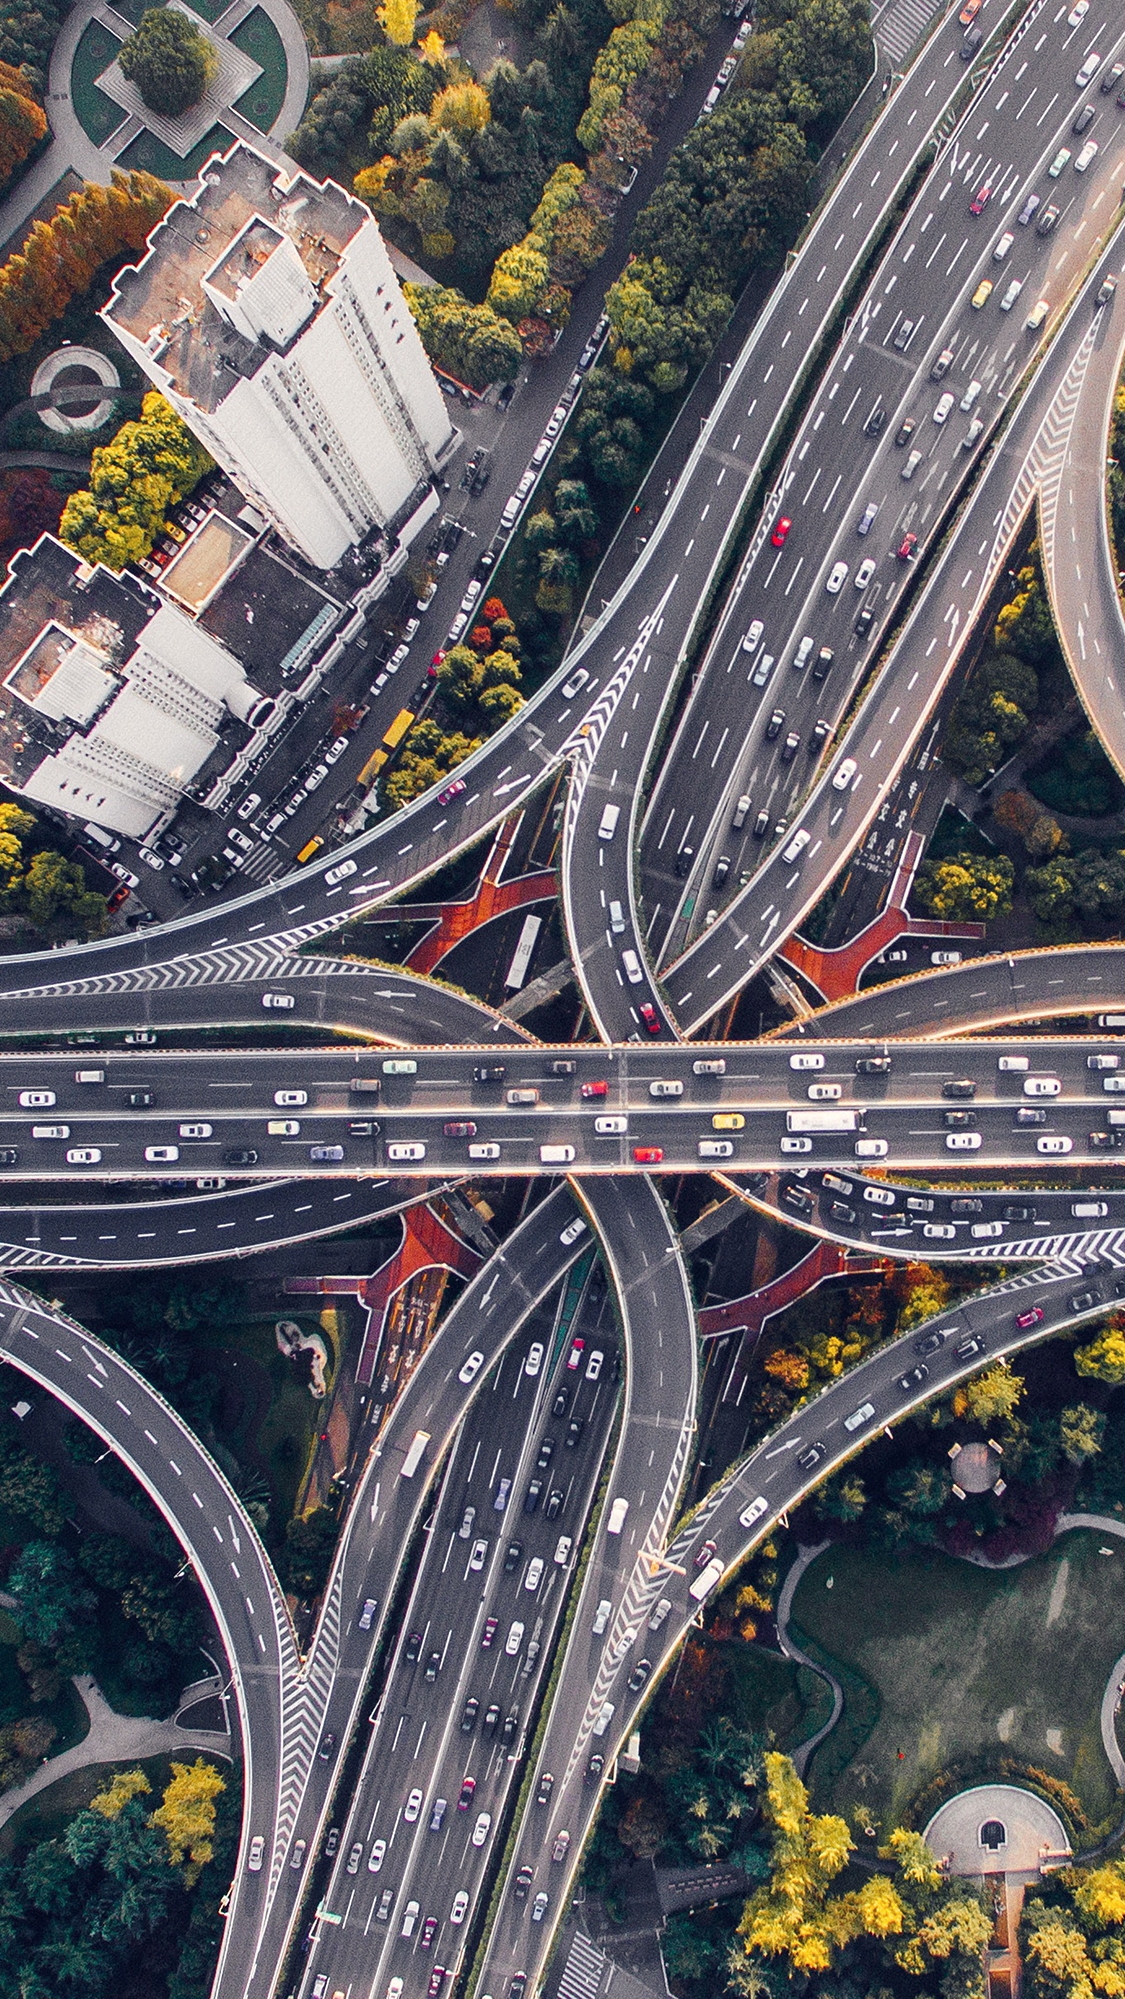 City road hightway cars skyview earthview nature iPhone Wallpaper